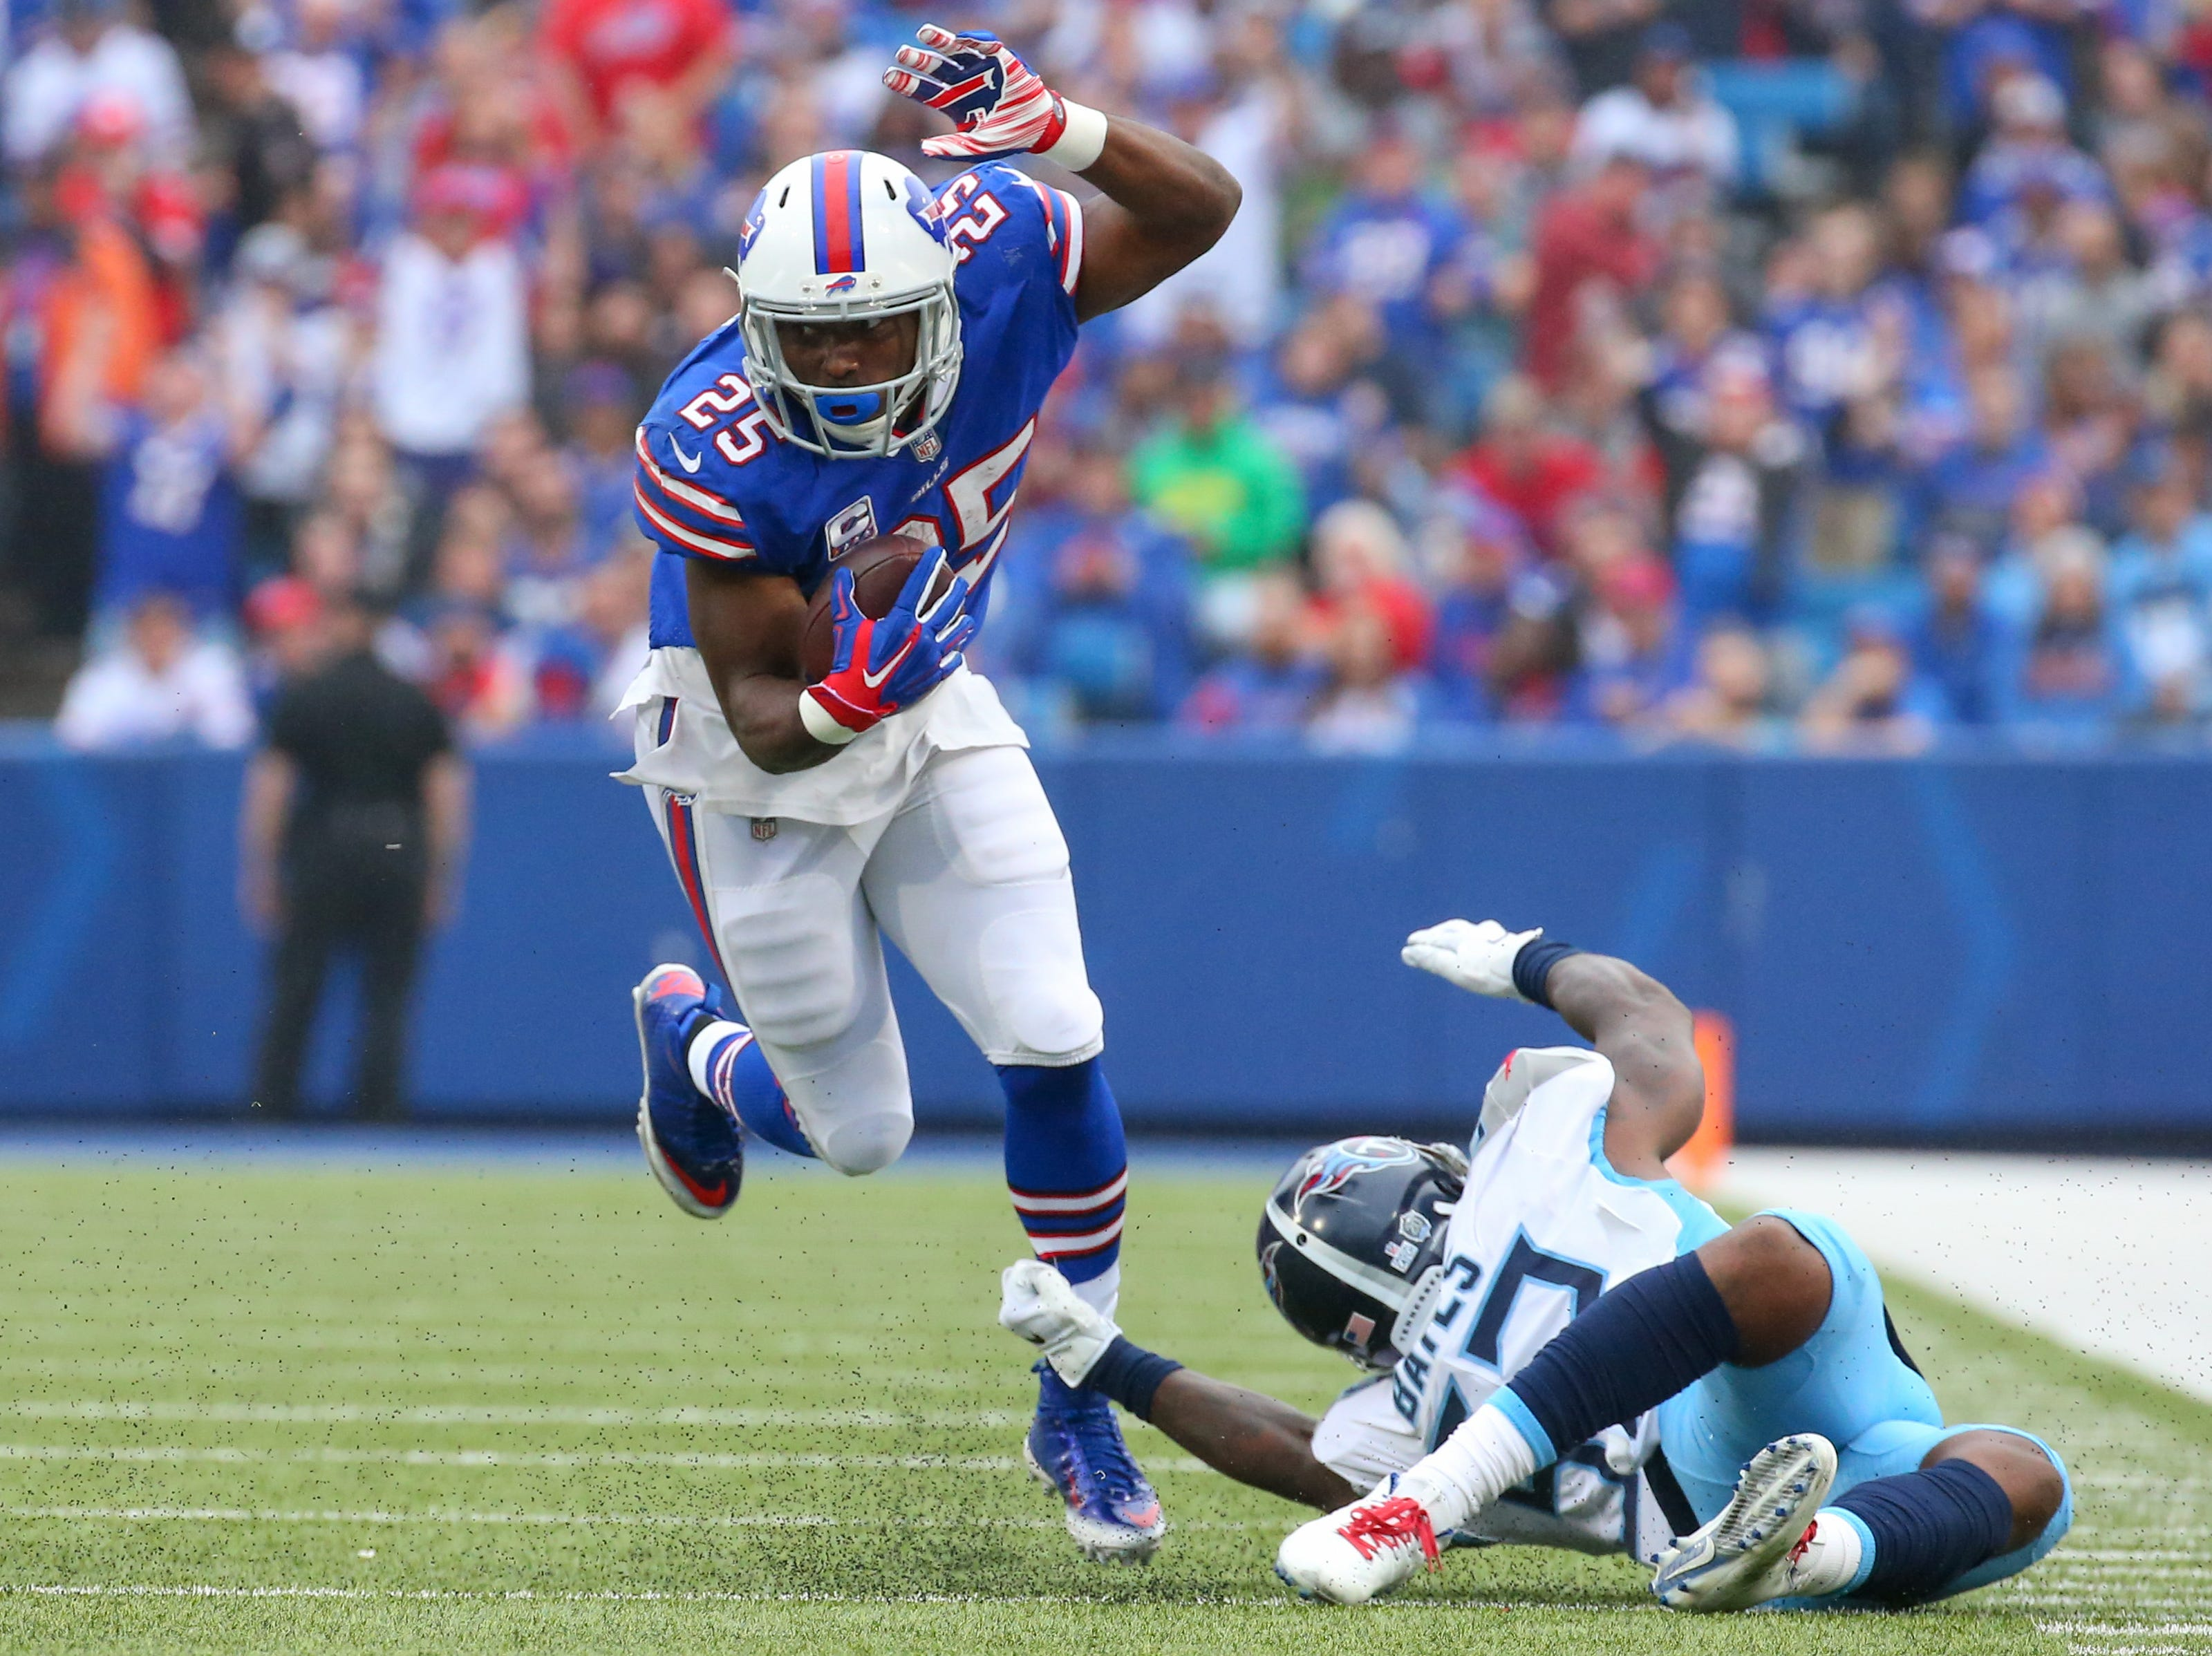 Oct 7, 2018; Orchard Park, NY, USA; Buffalo Bills running back LeSean McCoy (25) runs with the ball while avoiding a tackle attempt by Tennessee Titans linebacker Daren Bates (53) during the second quarter at New Era Field.